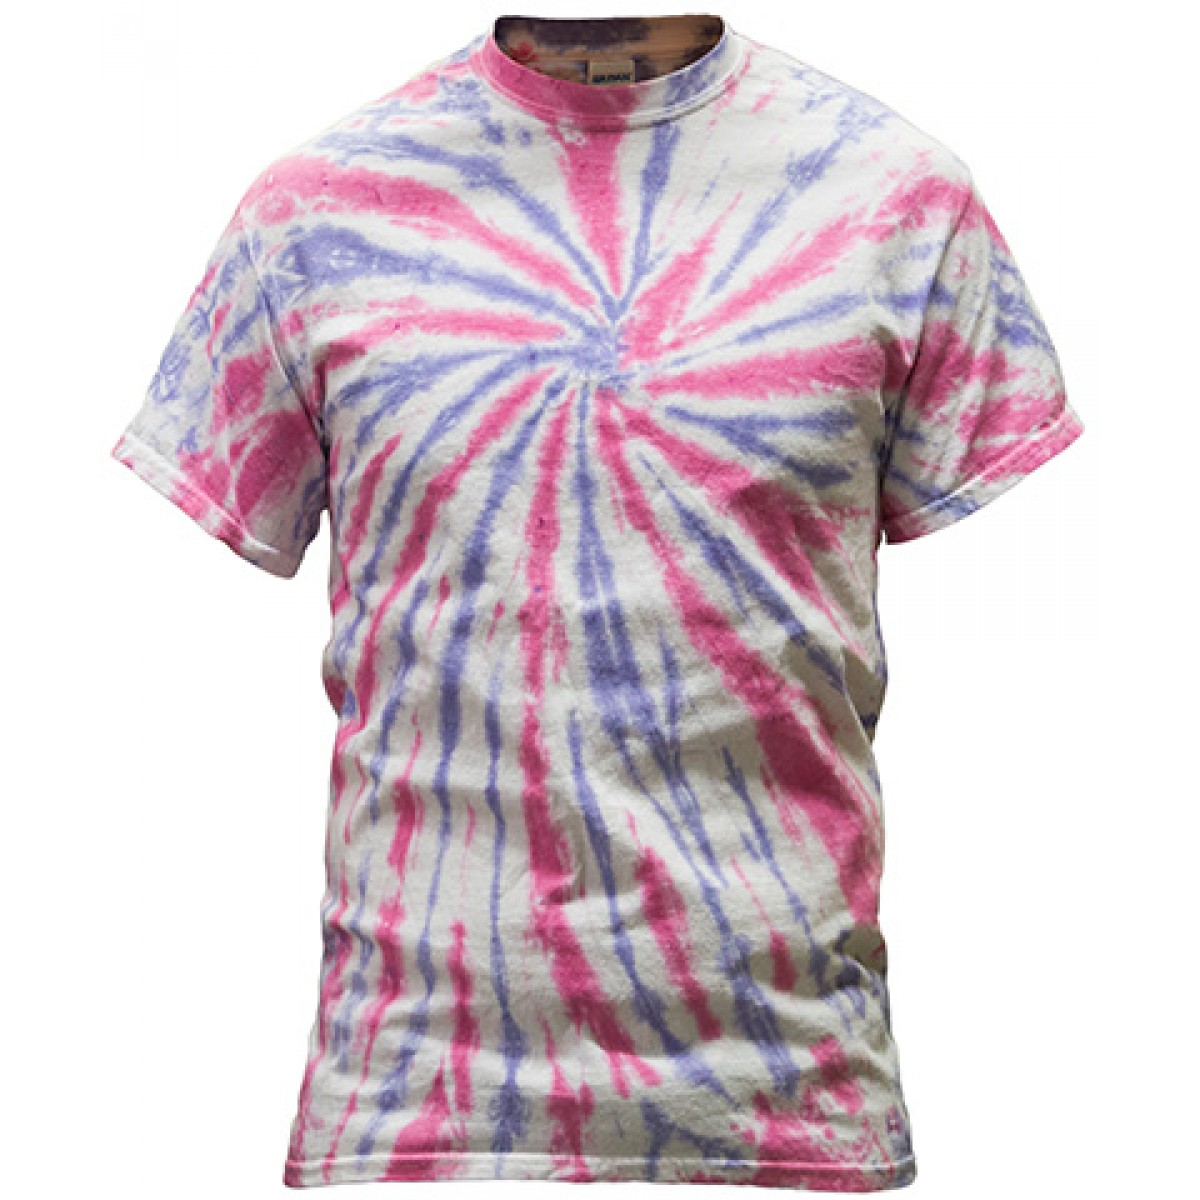 Multi-Color Tie-Dye Tee -Pink/Purple-YL